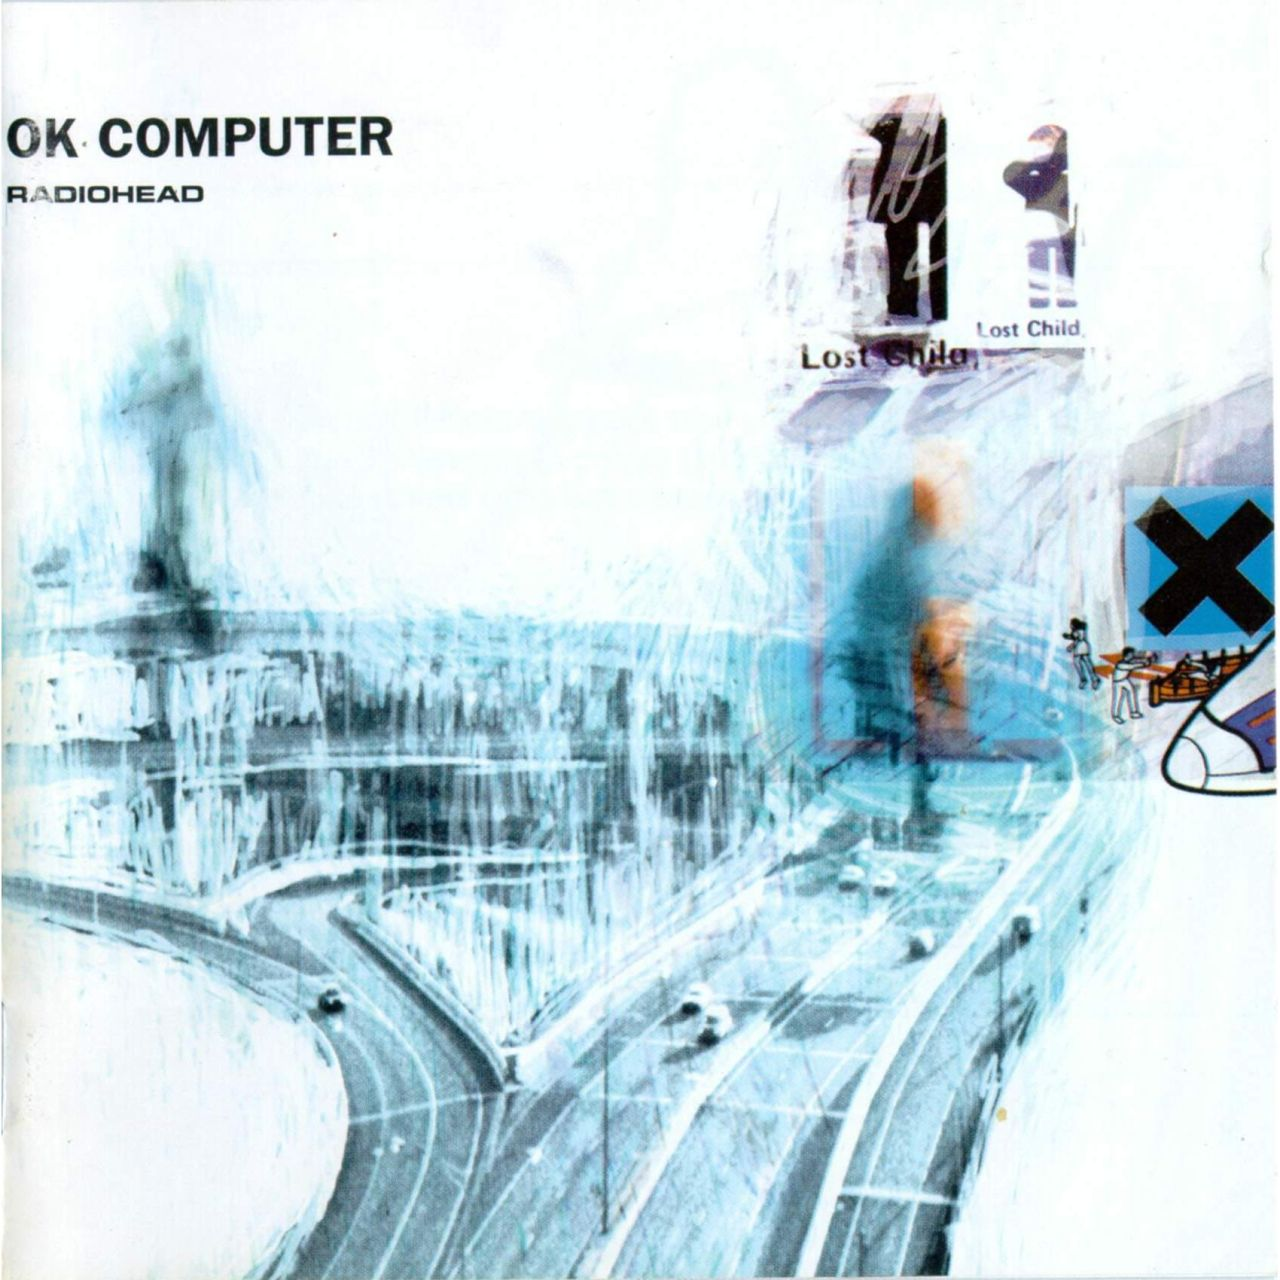 OK Computer was released 16 years ago today. I remember buying the CD that week, taking it home and listening to it intently from start to finish. I loved every song and still do. But I recall being struck particularly by tracks 3 and 4, Subterranean Homesick Alien and Exit Music (For a Film) respectively. If there are more perfectly composed and recorded songs, I've yet to hear them. Happy birthday, OK Computer.